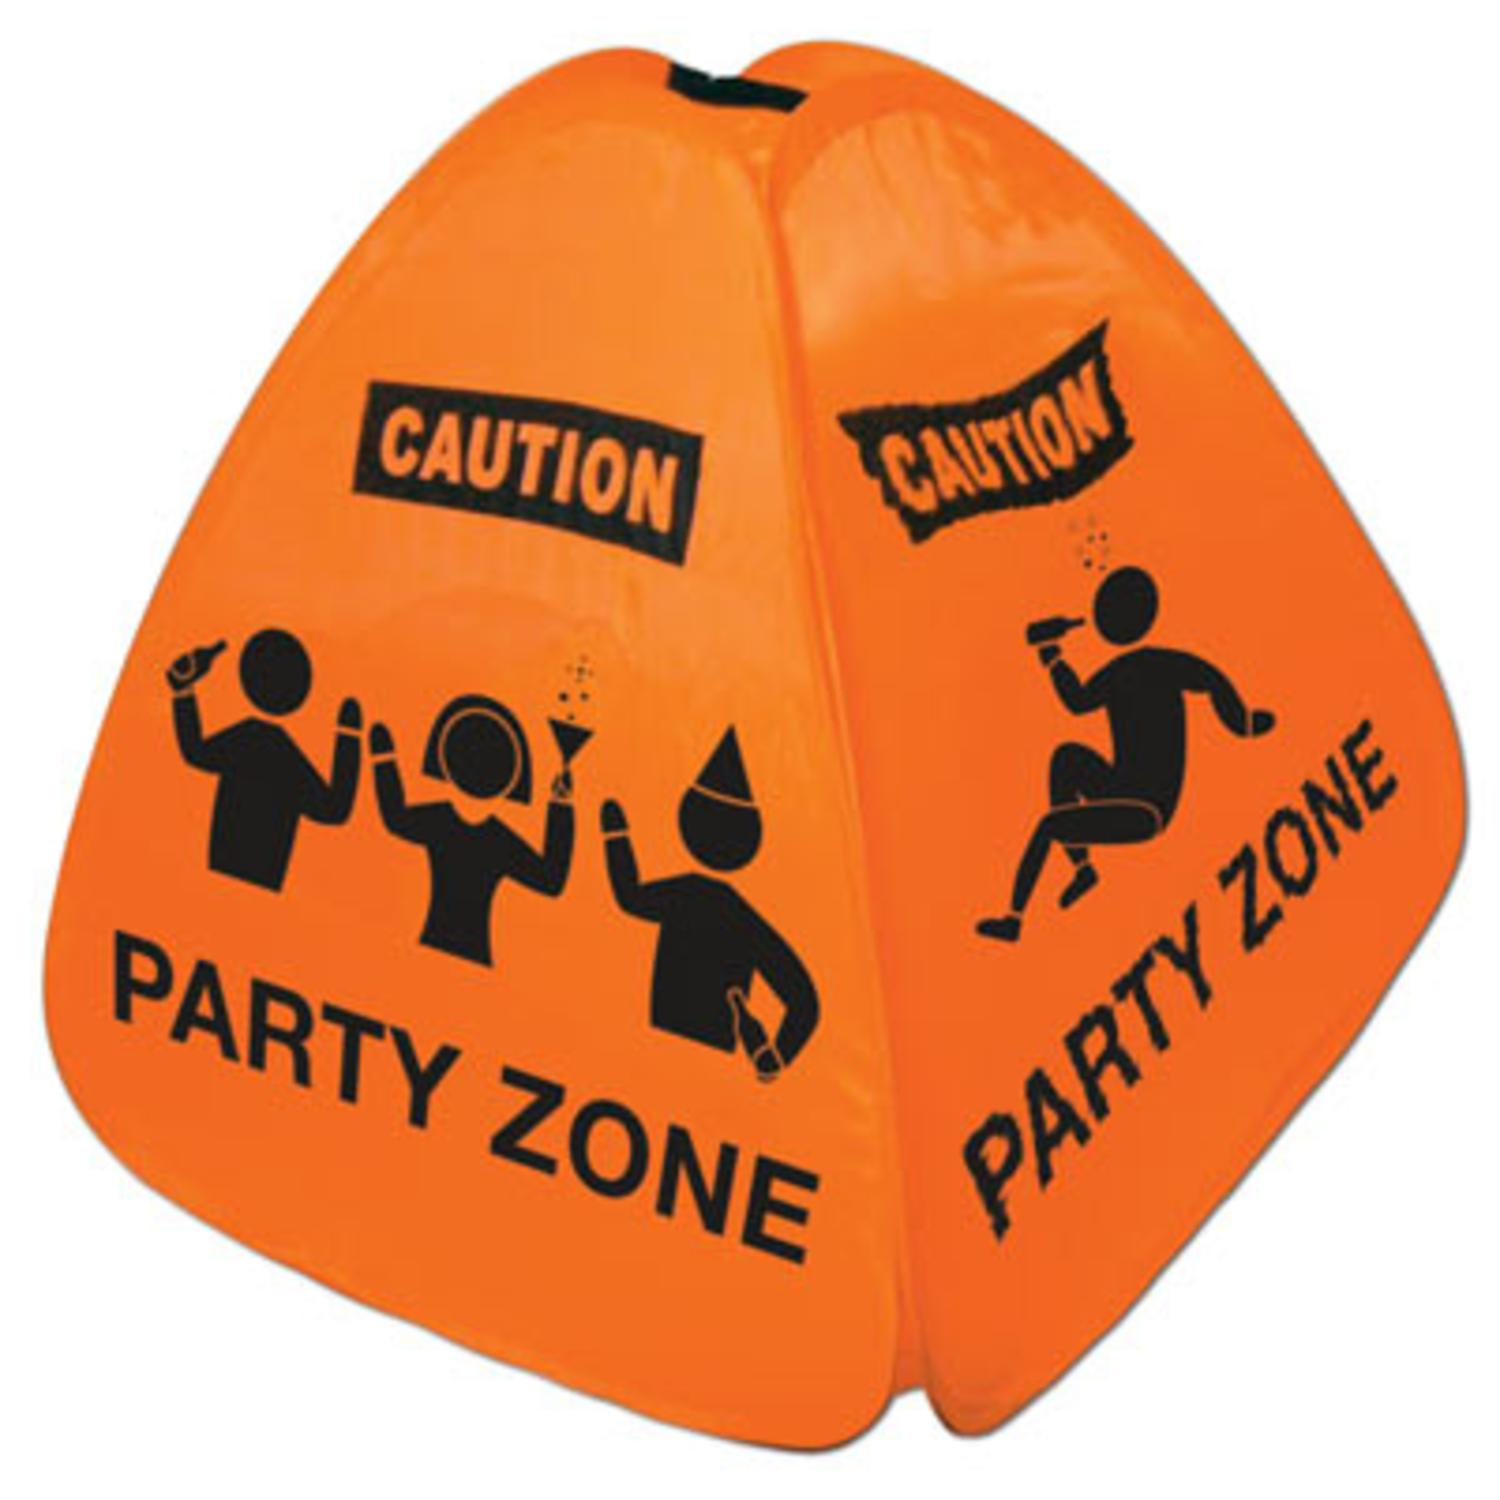 Pack of 12 Party Zone Orange Caution Cone Collapsible Pop...